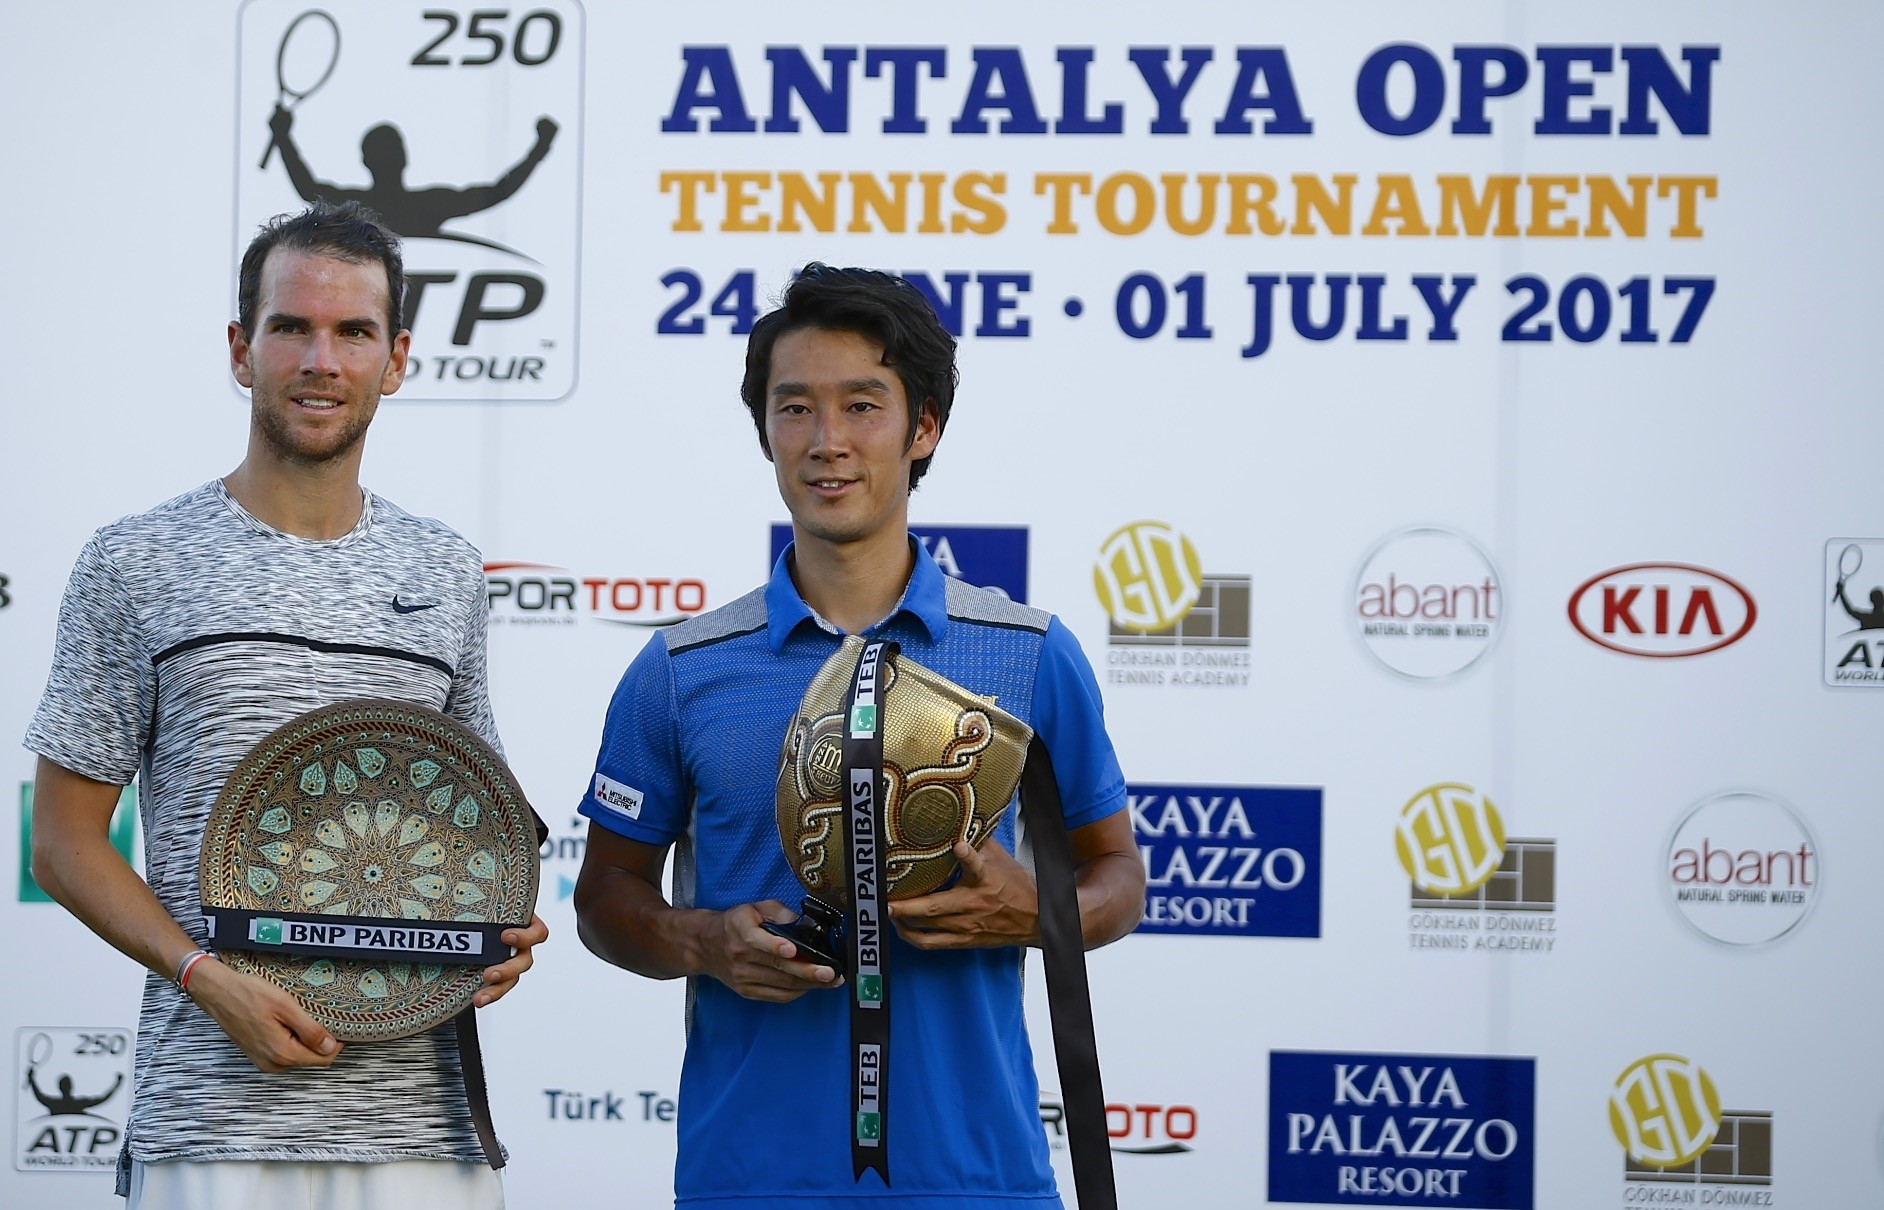 Sugita (R) downed Mannarino 6-1, 7-6(4) for his first ATP World Tour title at the Antalya Open to win the big prize.